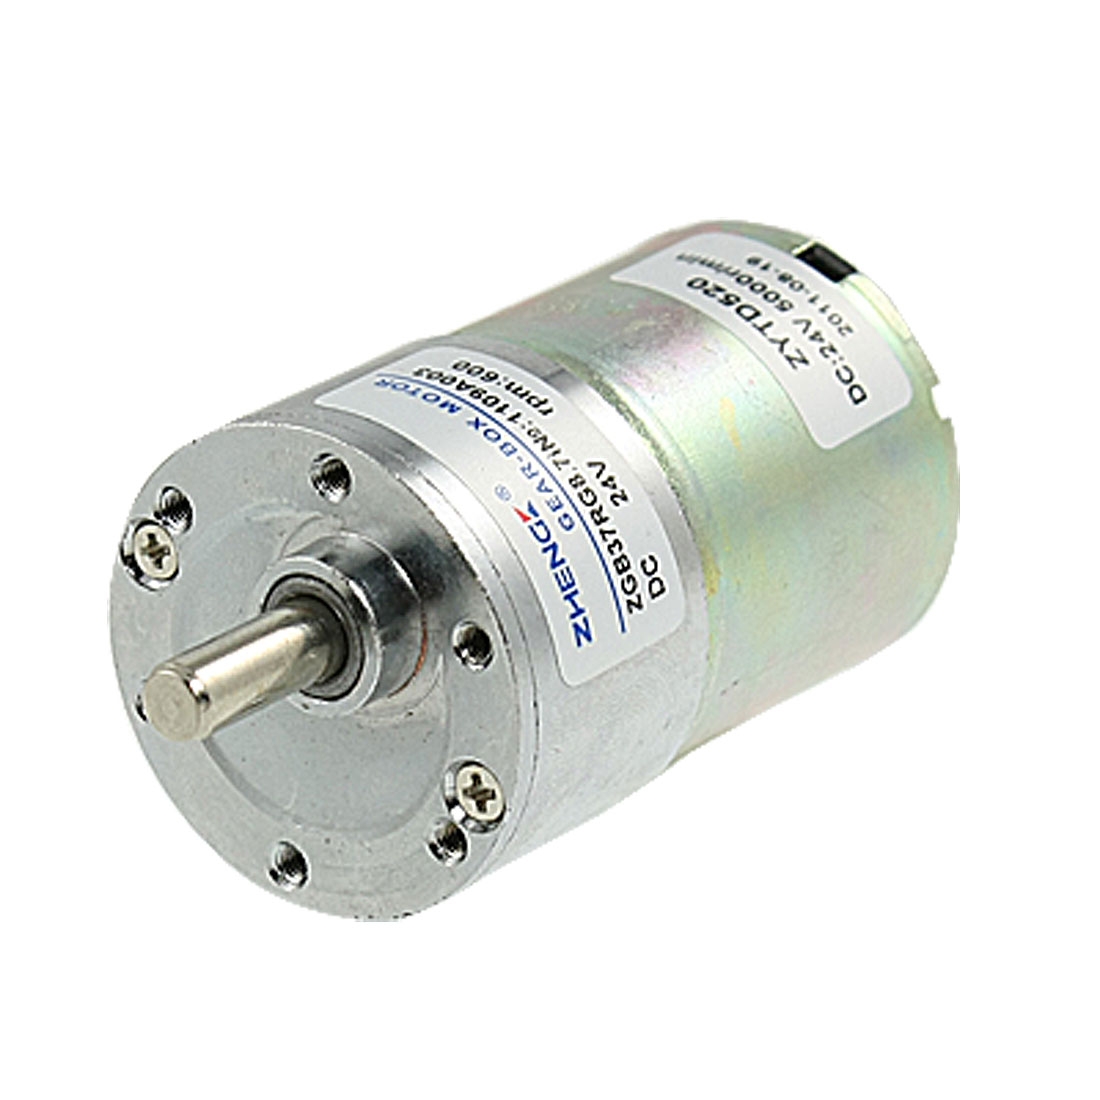 6mm Diameter Output Shaft 24V 0.33A DC Speed Reduce Gear Motor 600RPM